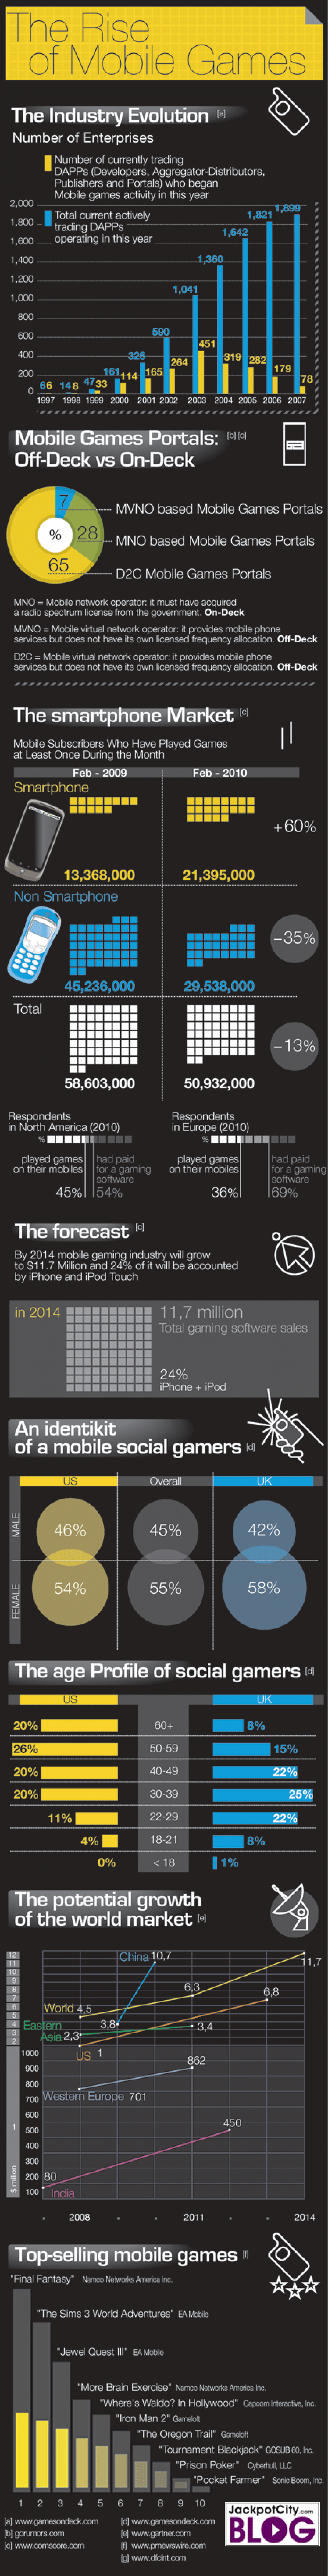 The Rise of Mobile Games Infographic